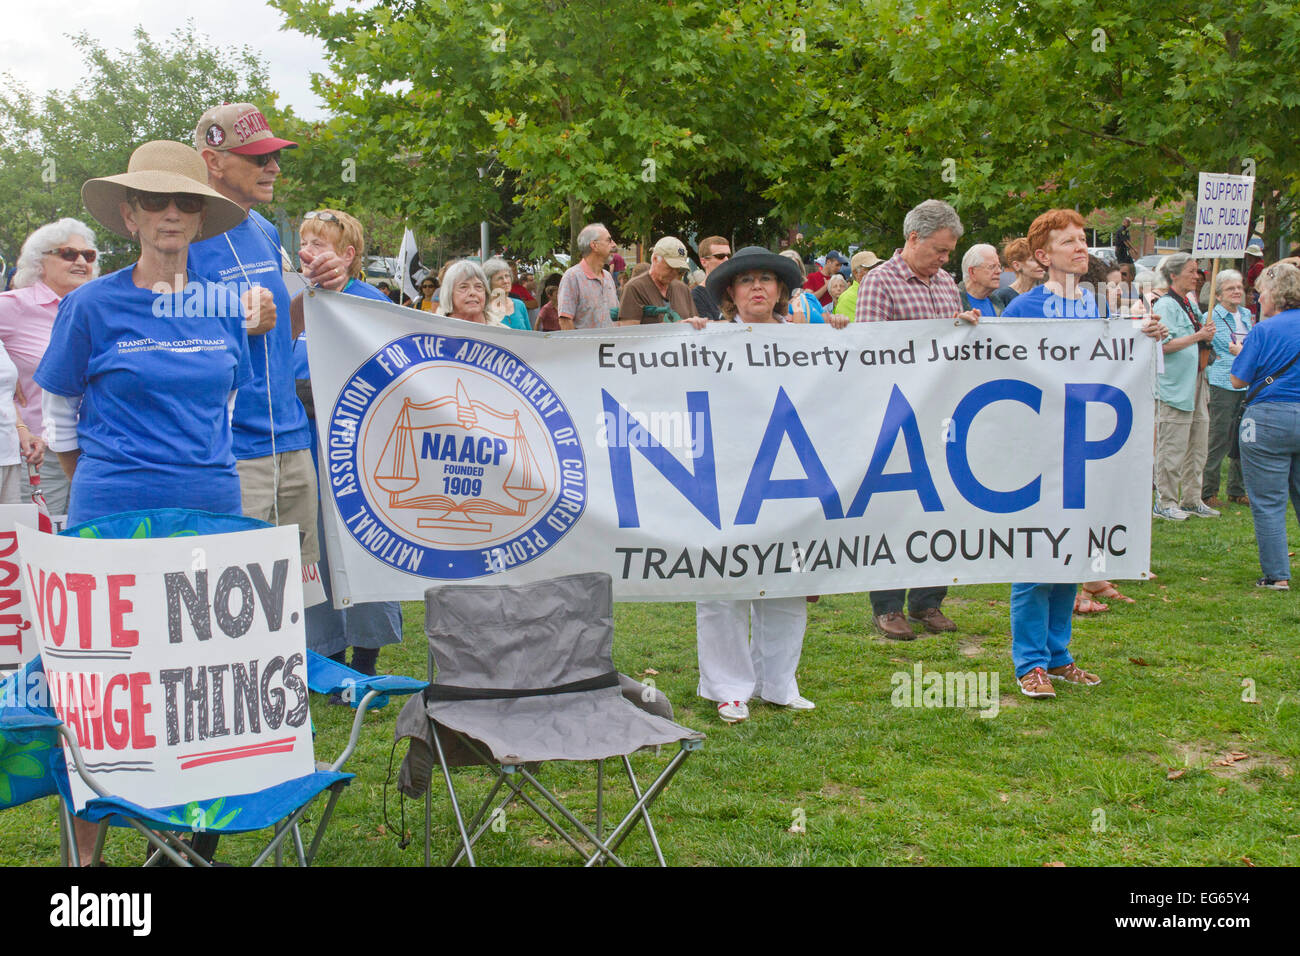 Crowd of mostly older caucasian people hold signs promoting the NAACP and voting at a Moral Monday rally - Stock Image